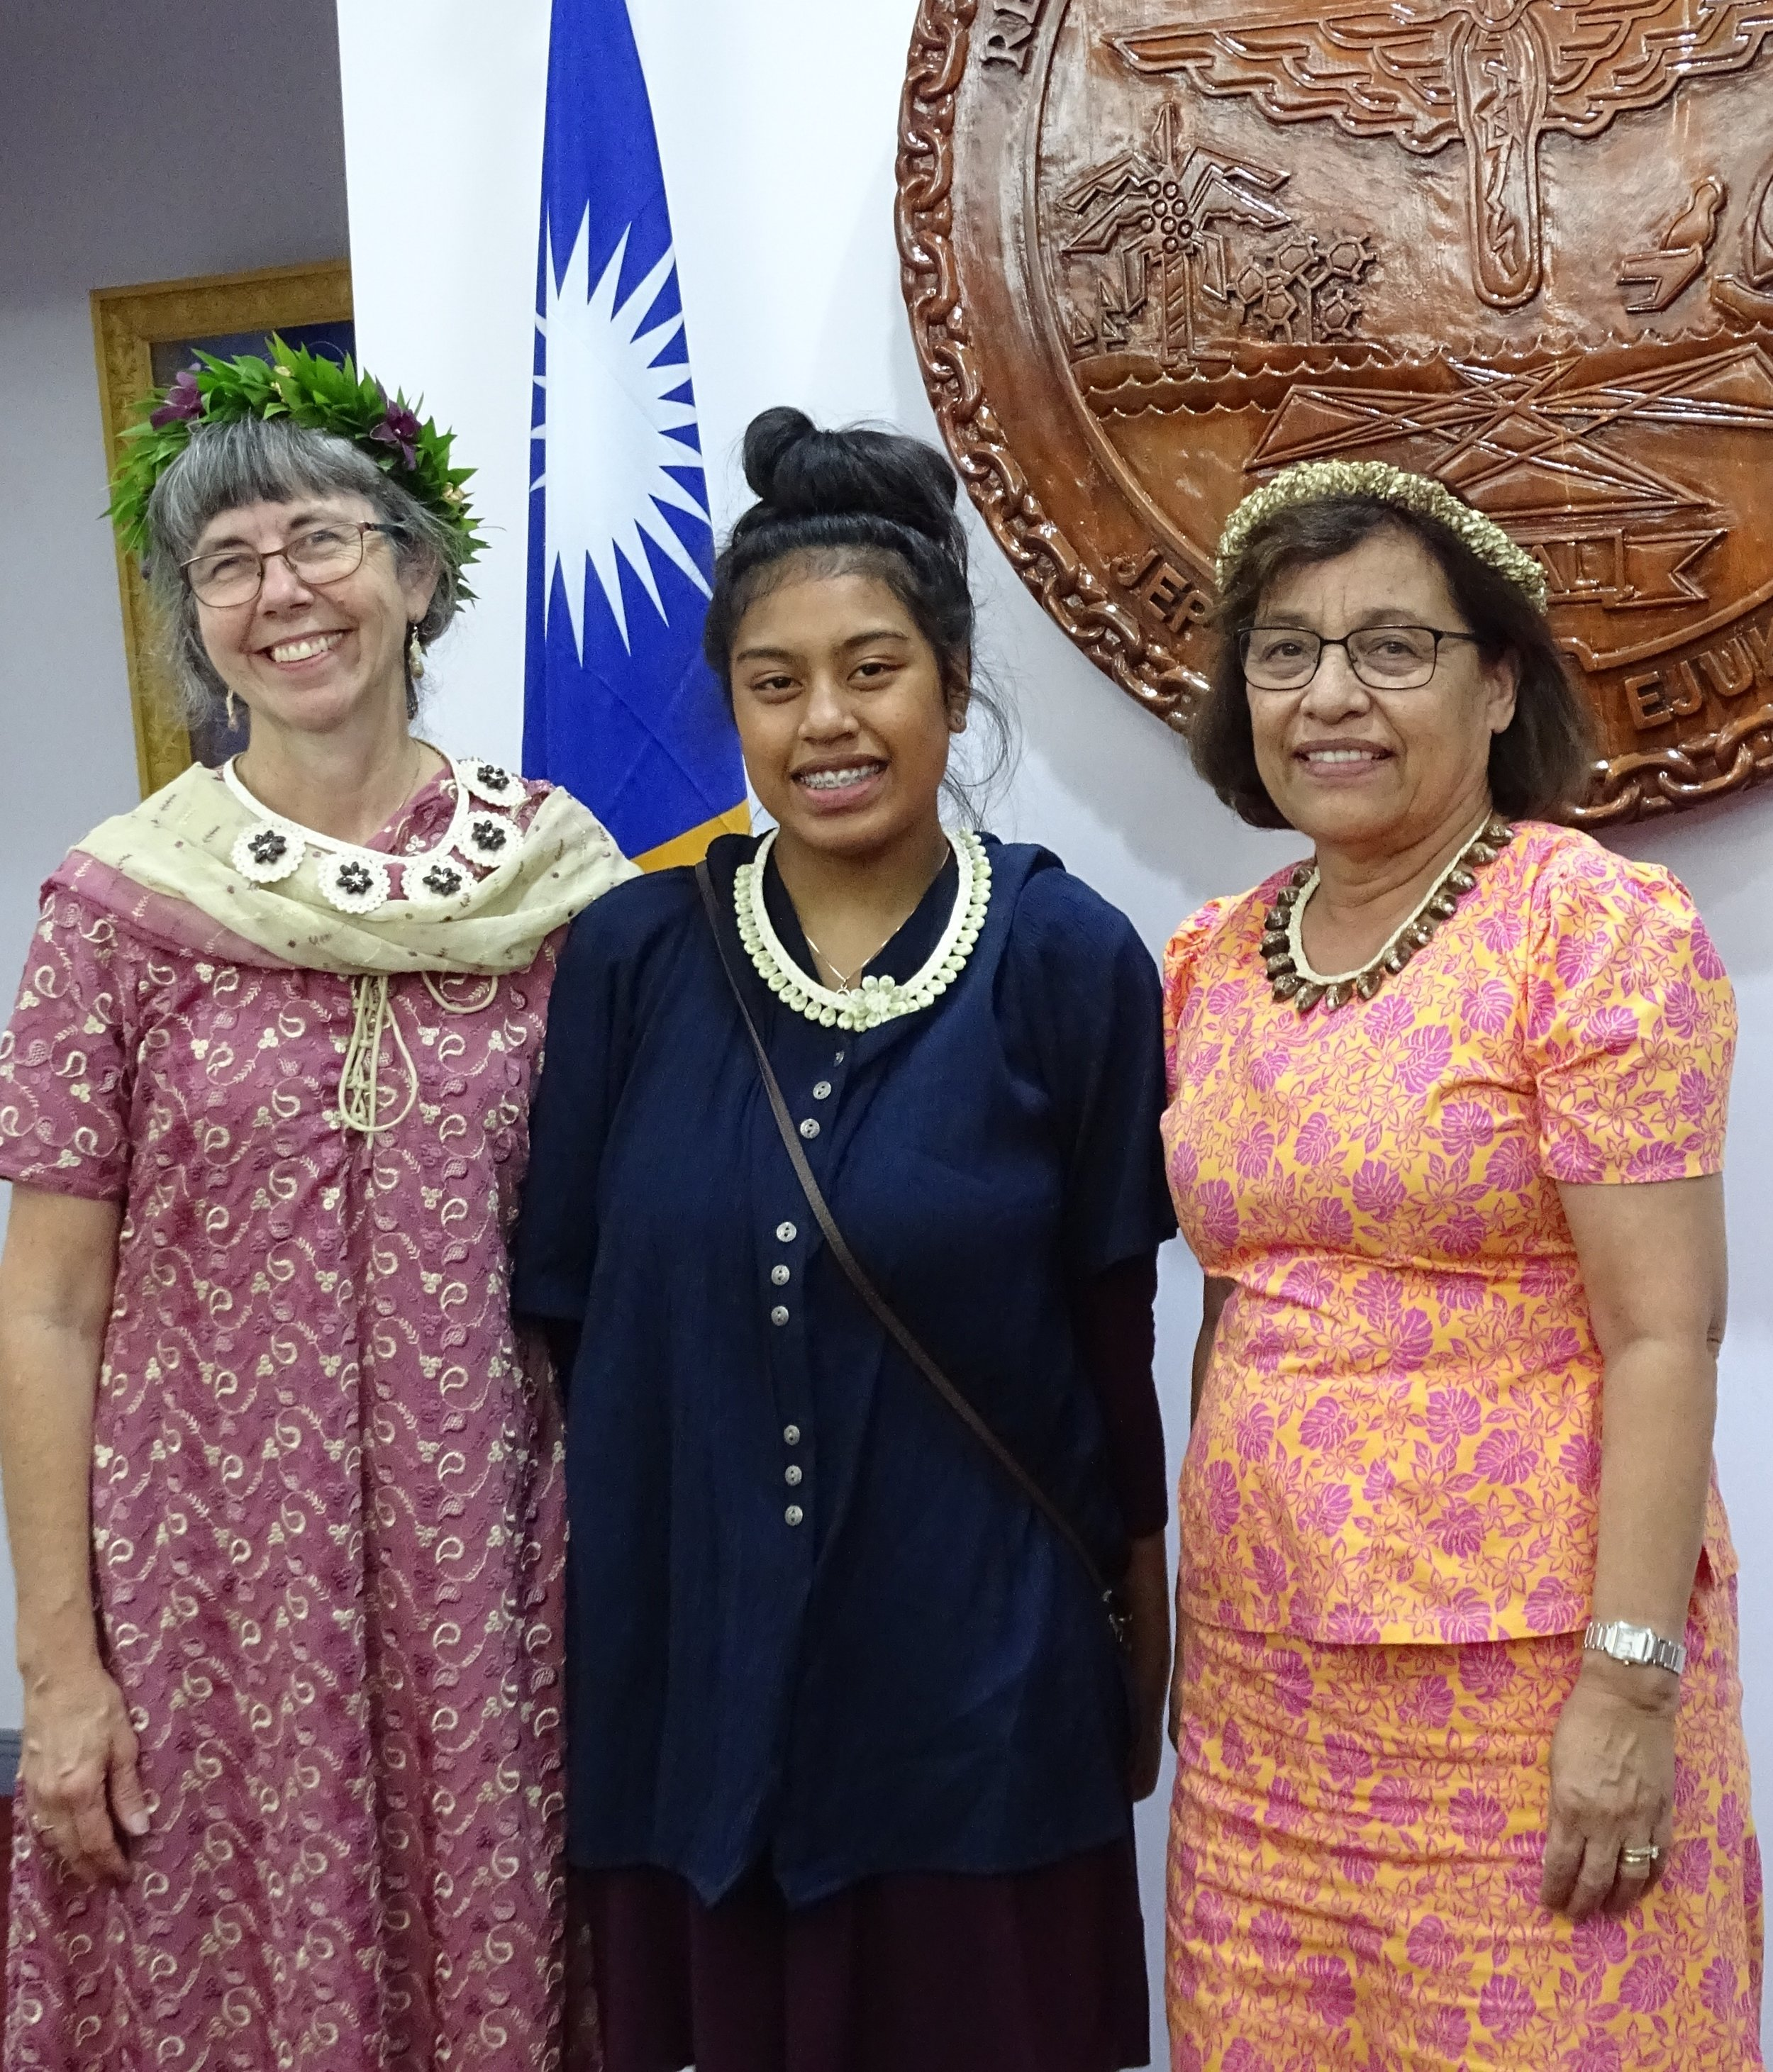 Miko's mom, Pam Vergun (left), and Miko (center) with the Marshallese President, Hilda Heine (right). Photo: Kelly Lorennij, Marshall Islands Journal